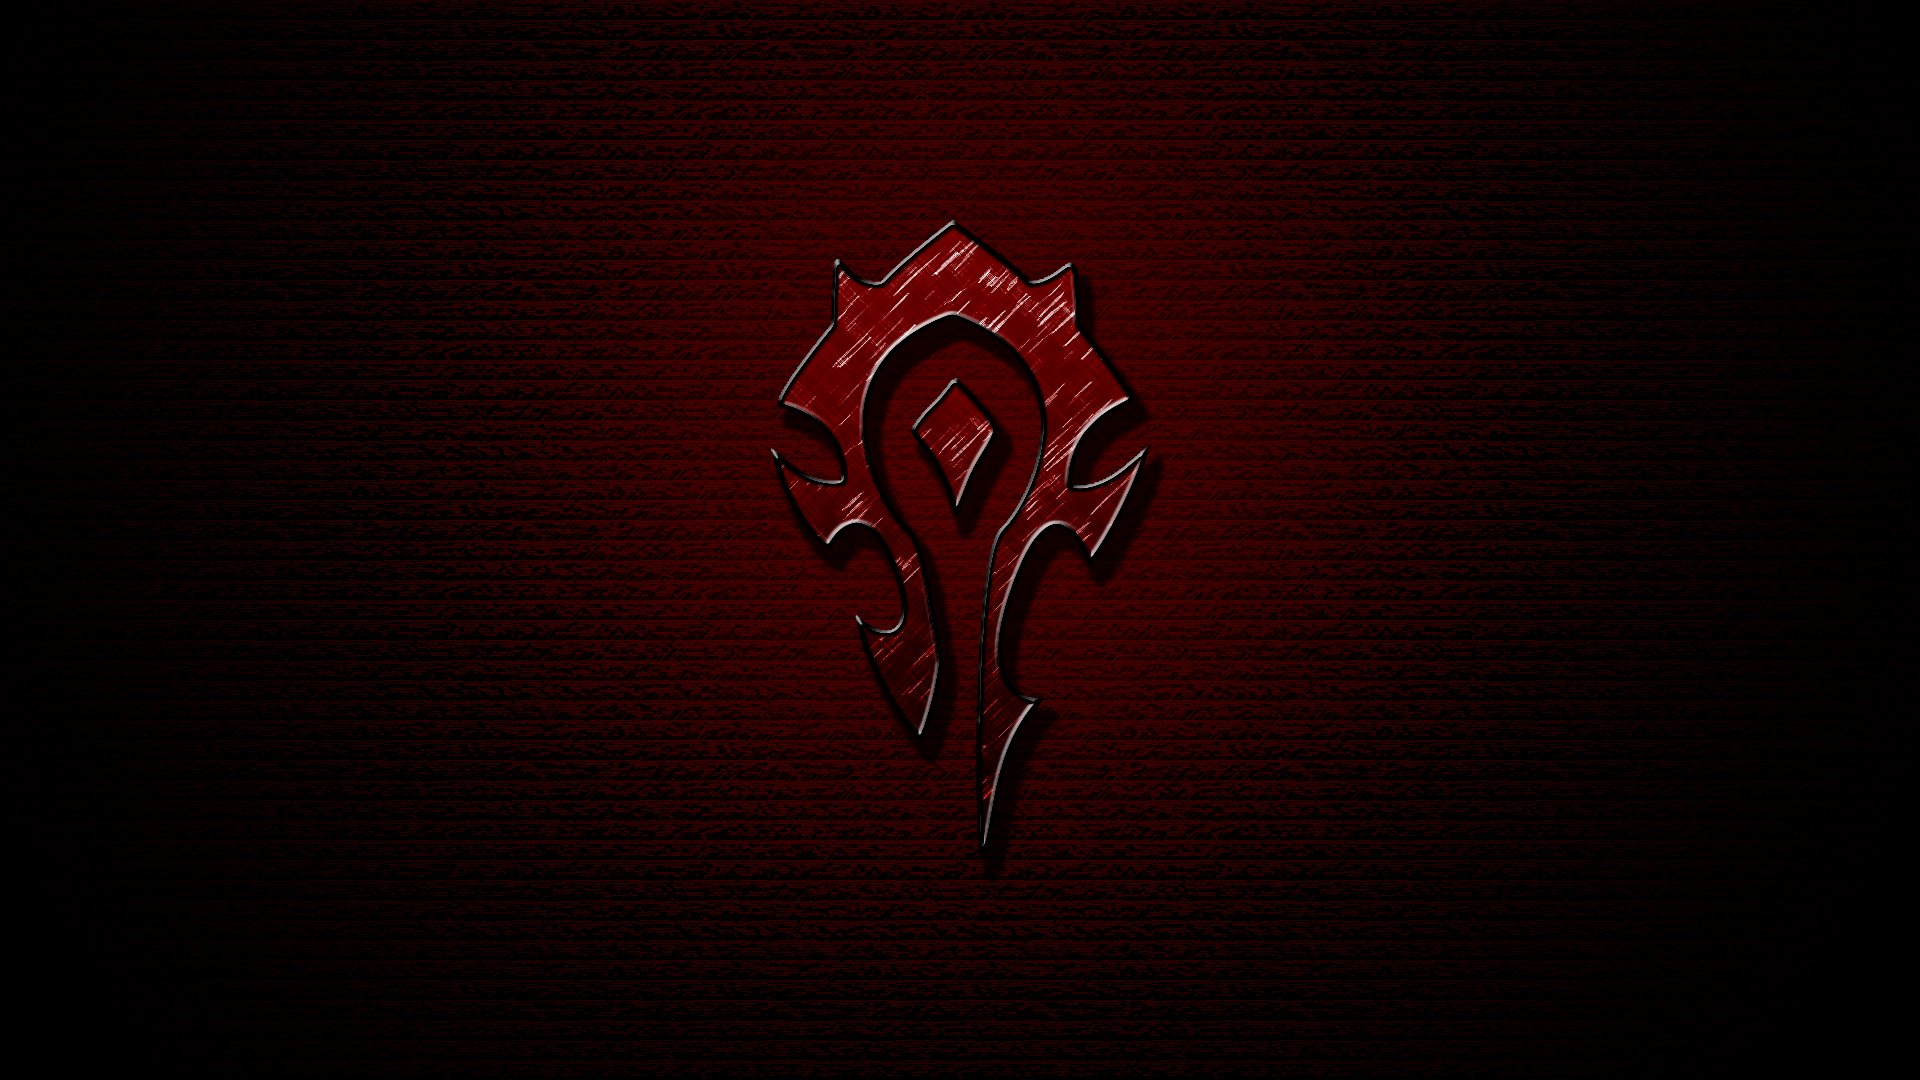 Horde Wallpaper Hd Posted By Zoey Cunningham